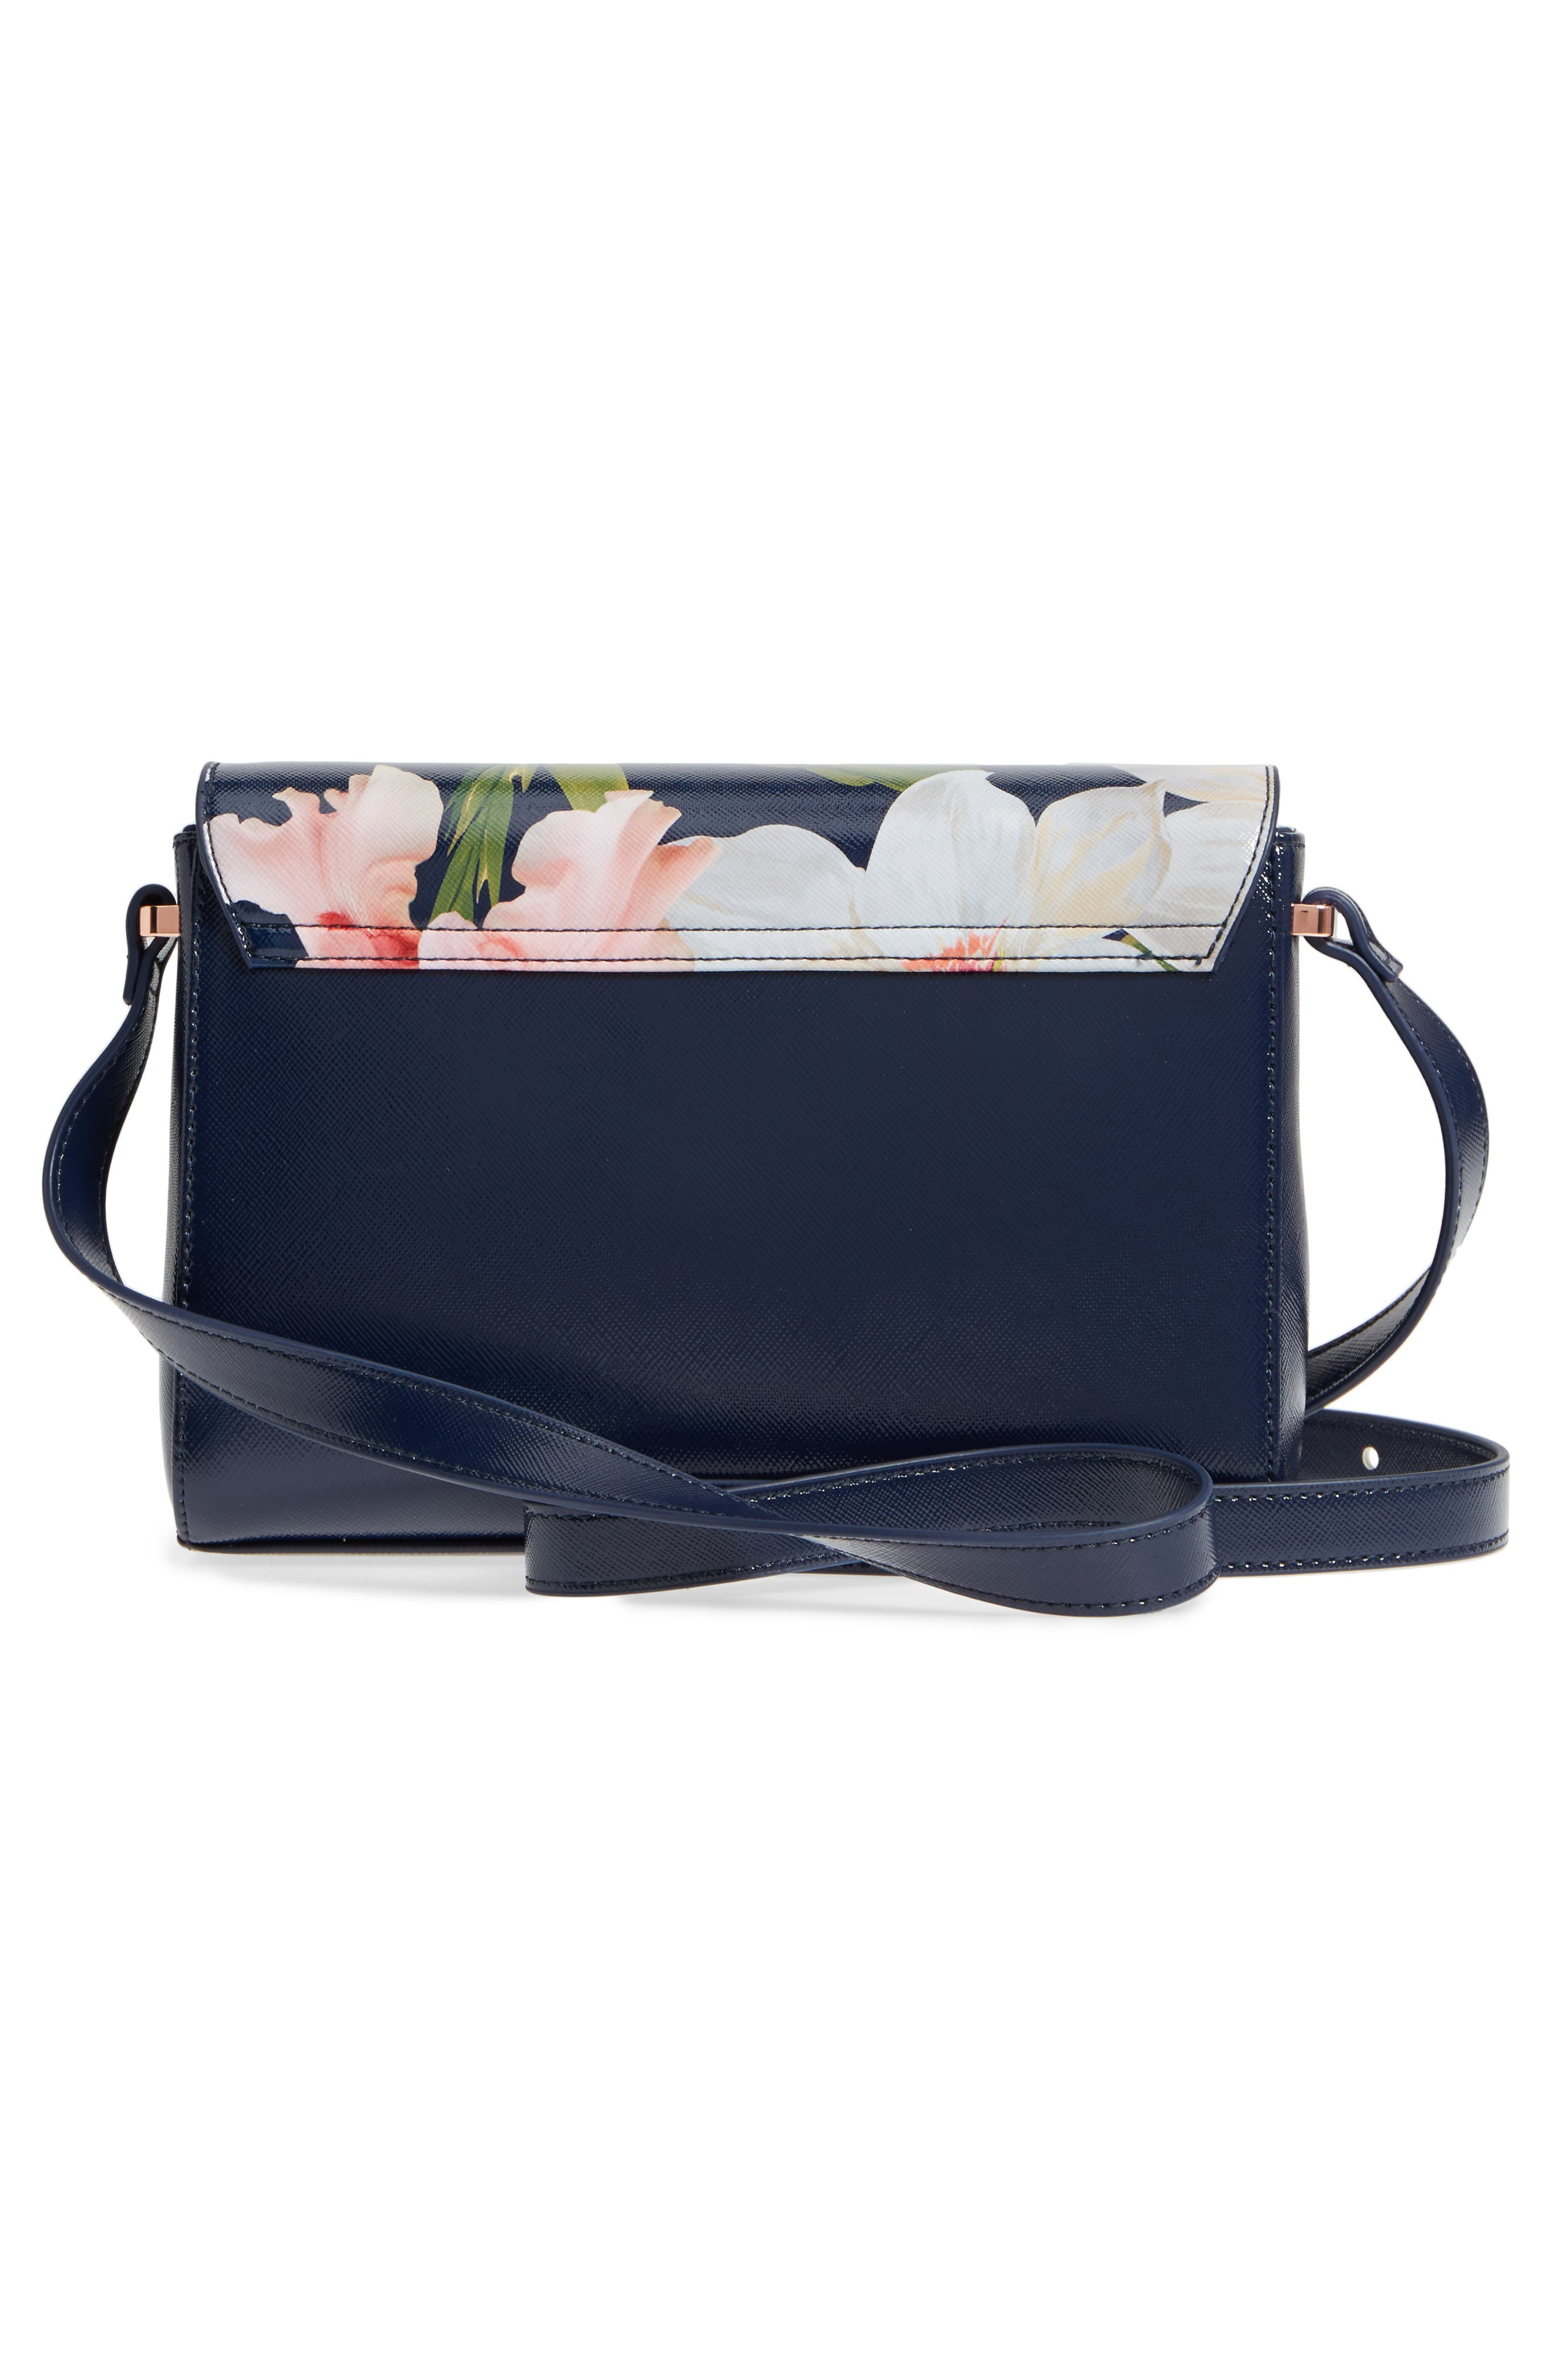 Prim Chatsworth Bloom Faux Leather Crossbody Bag,                             Alternate thumbnail 3, color,                             Navy